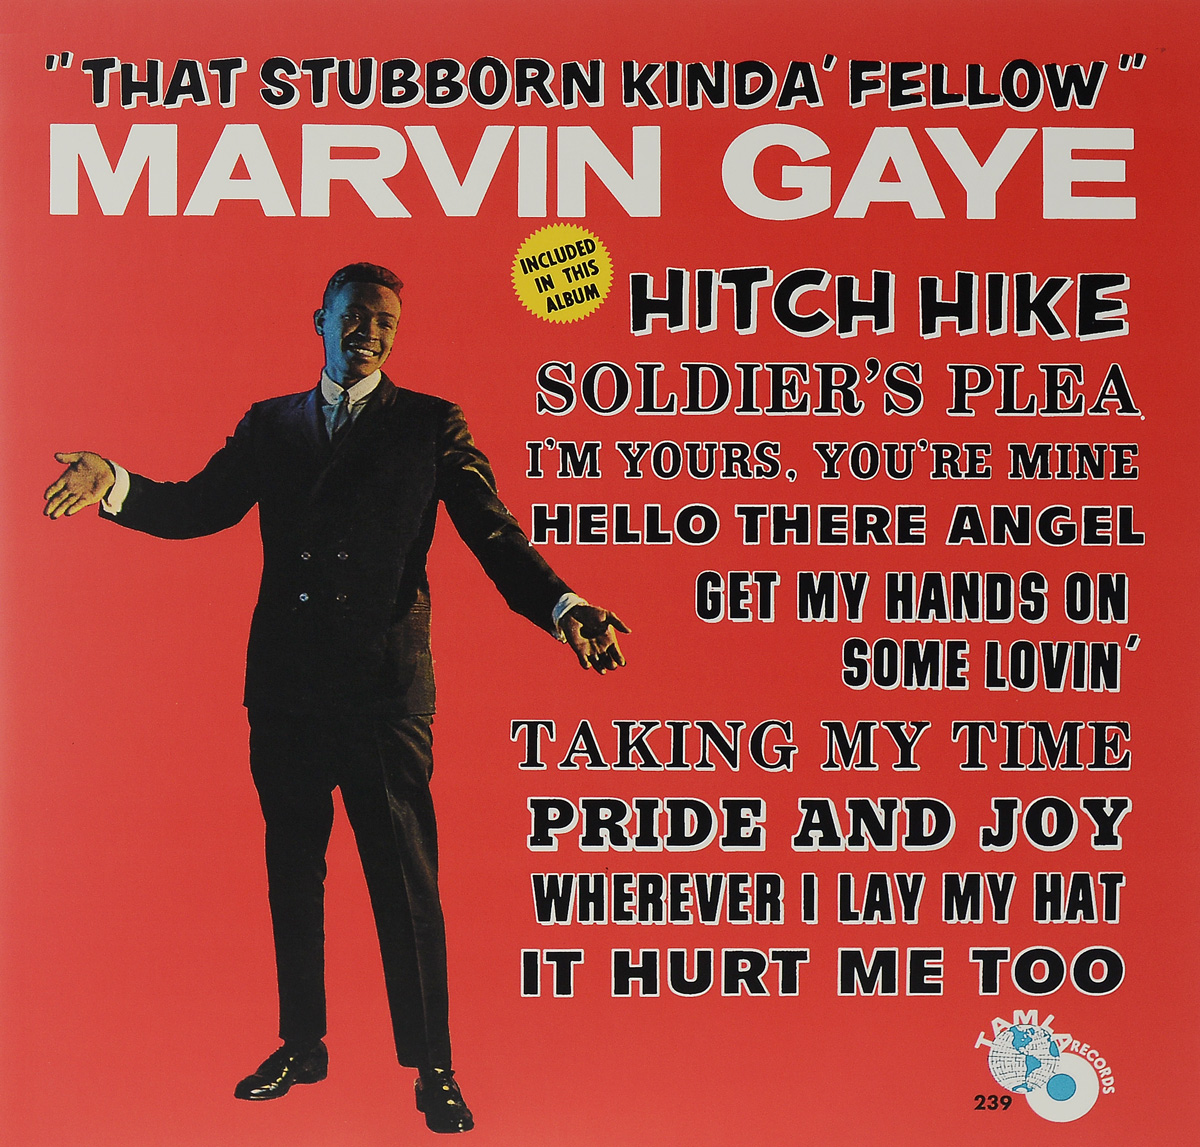 Марвин Гэй Marvin Gaye. That Stubborn Kinda' Fellow (LP) marvin gaye marvin gaye how sweet it is to be loved by you